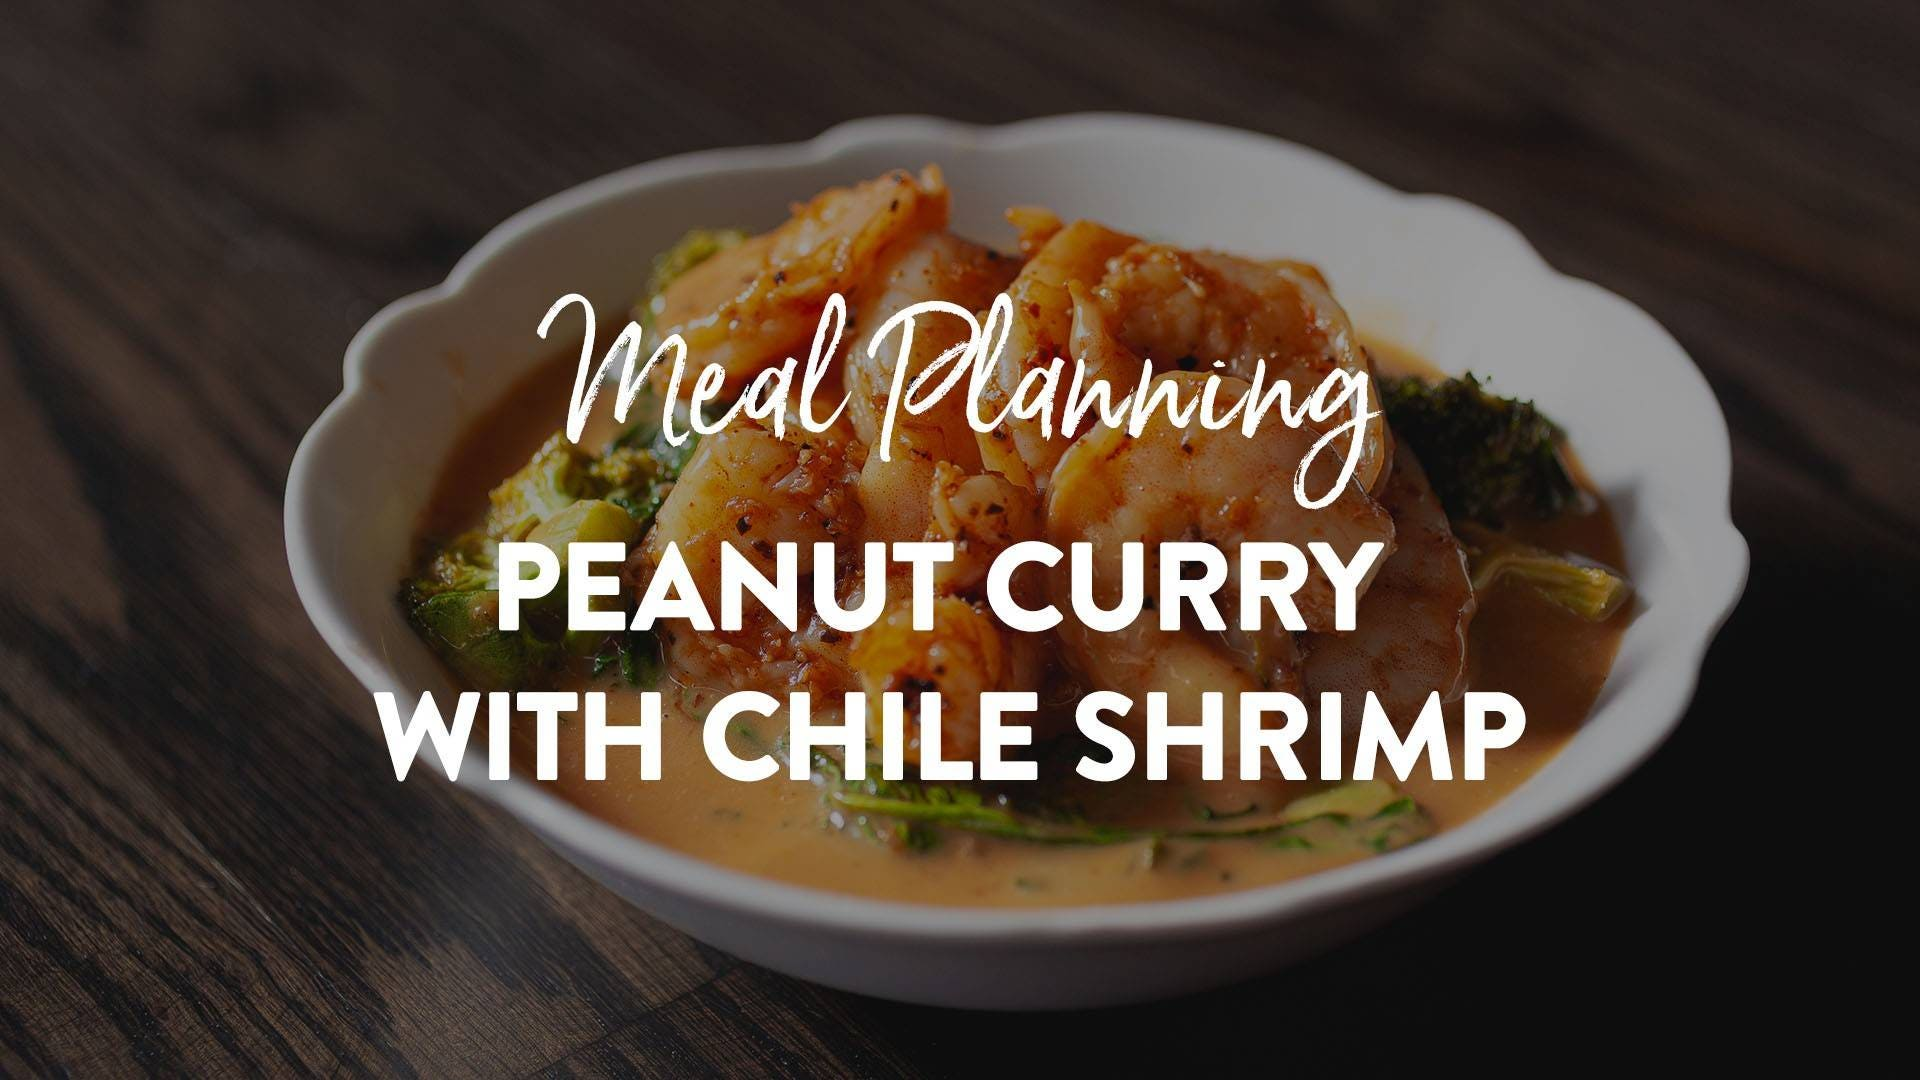 Peanut Curry with Chile Shrimp Recipe